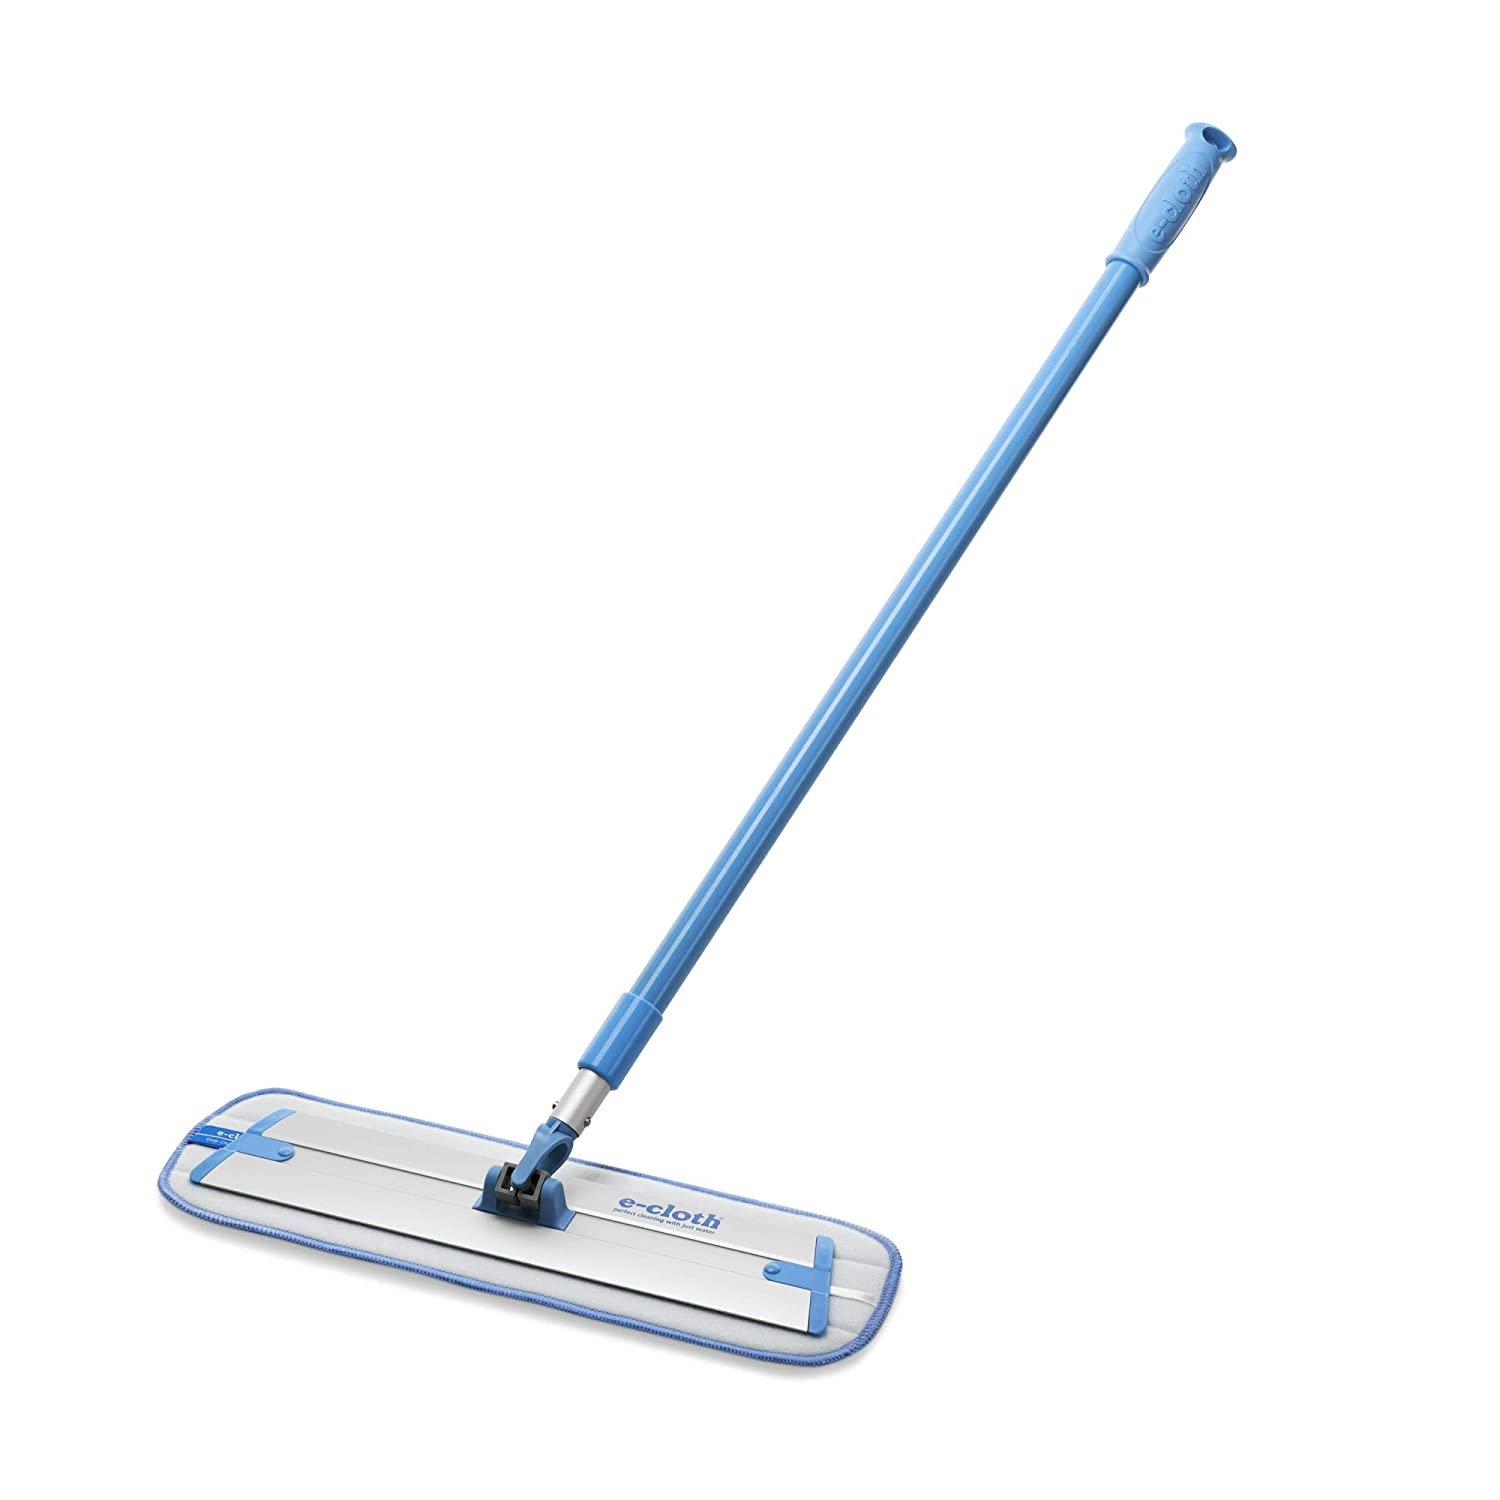 E-Cloth Deep Clean Mop - Original European Microfiber Damp Mop with Sturdy Telescoping Handle